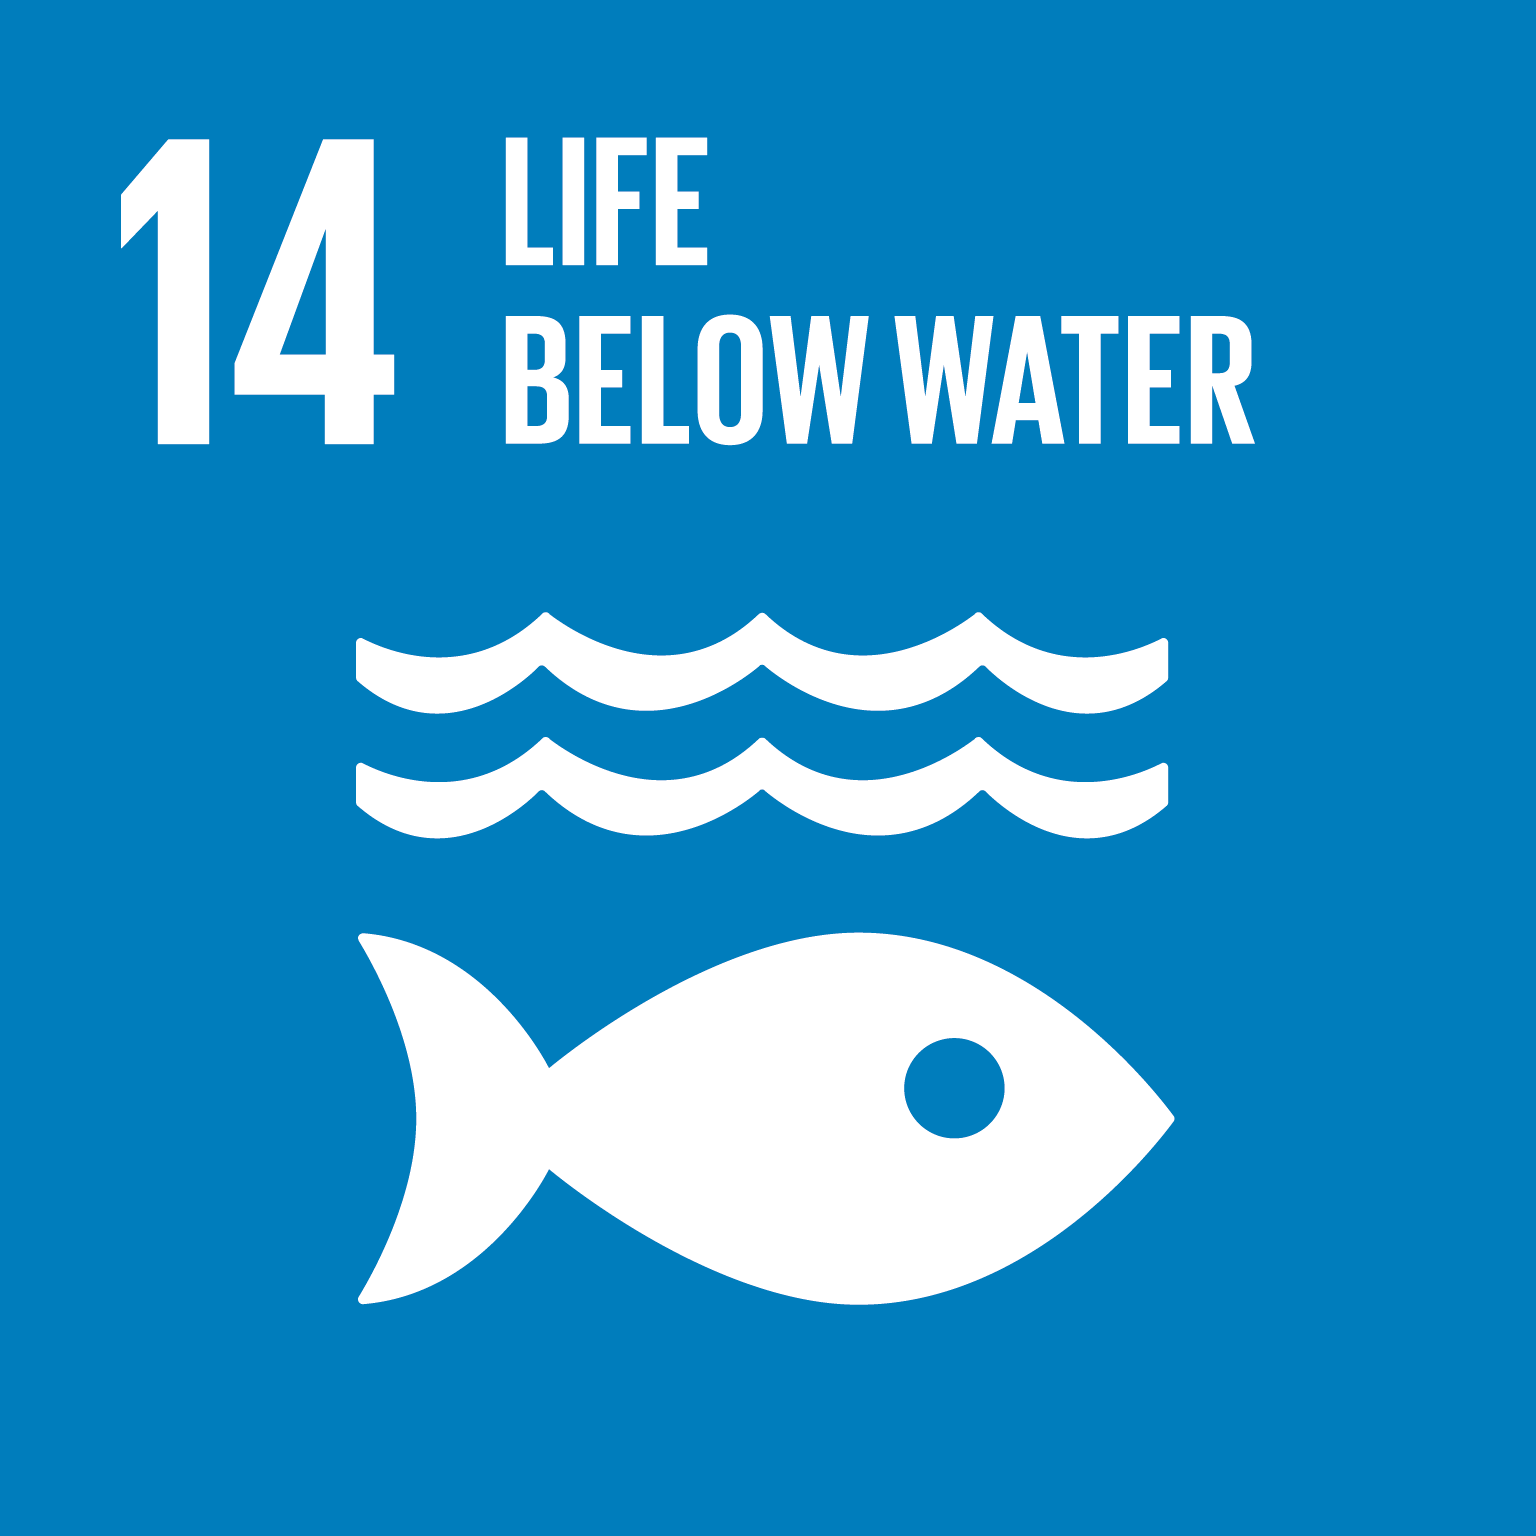 SDG 14 Posters